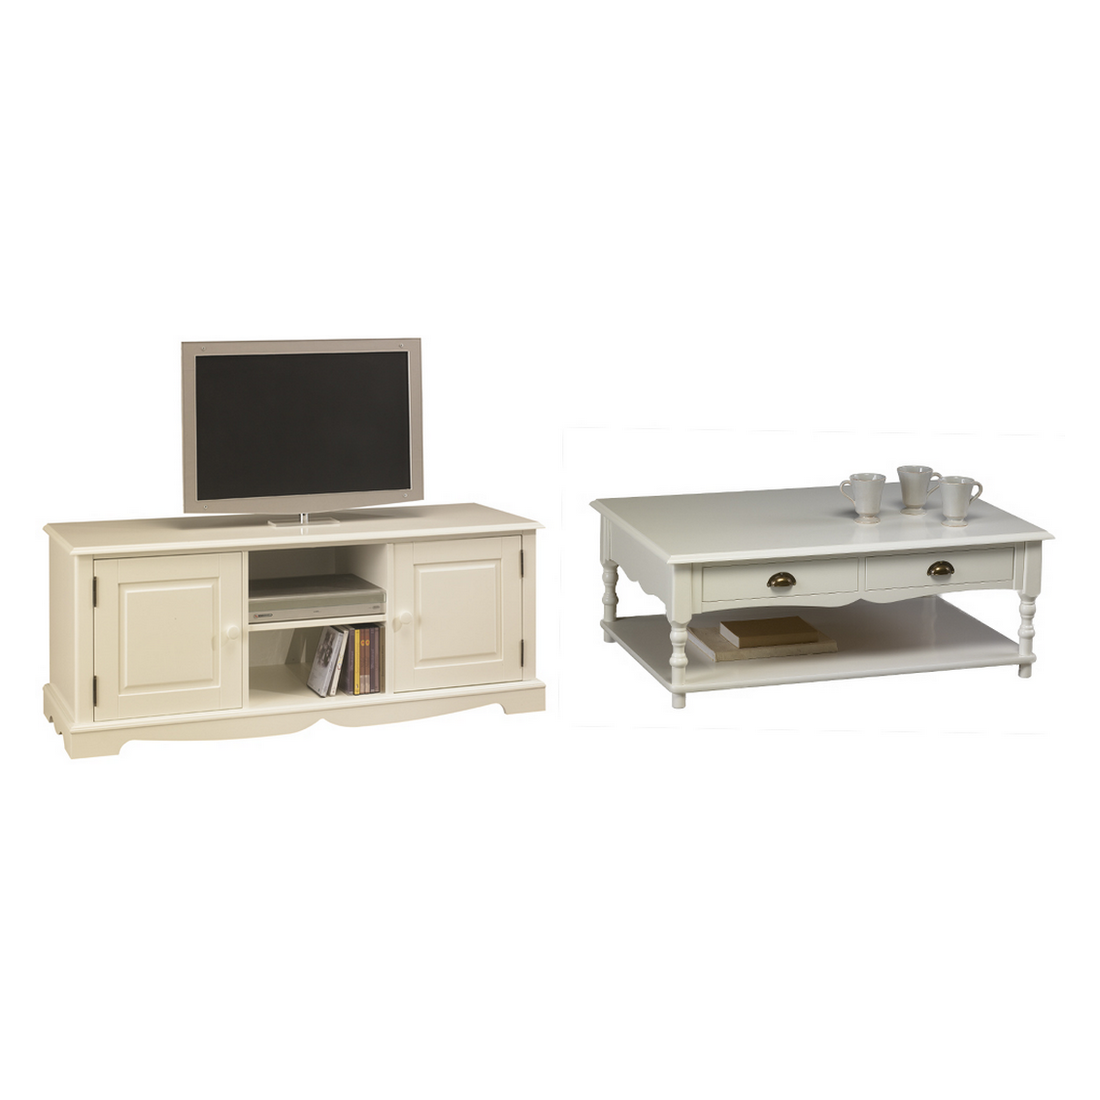 Beaux censemble meuble tv et table basse blancs meuble - Ensemble meuble tv table basse ...